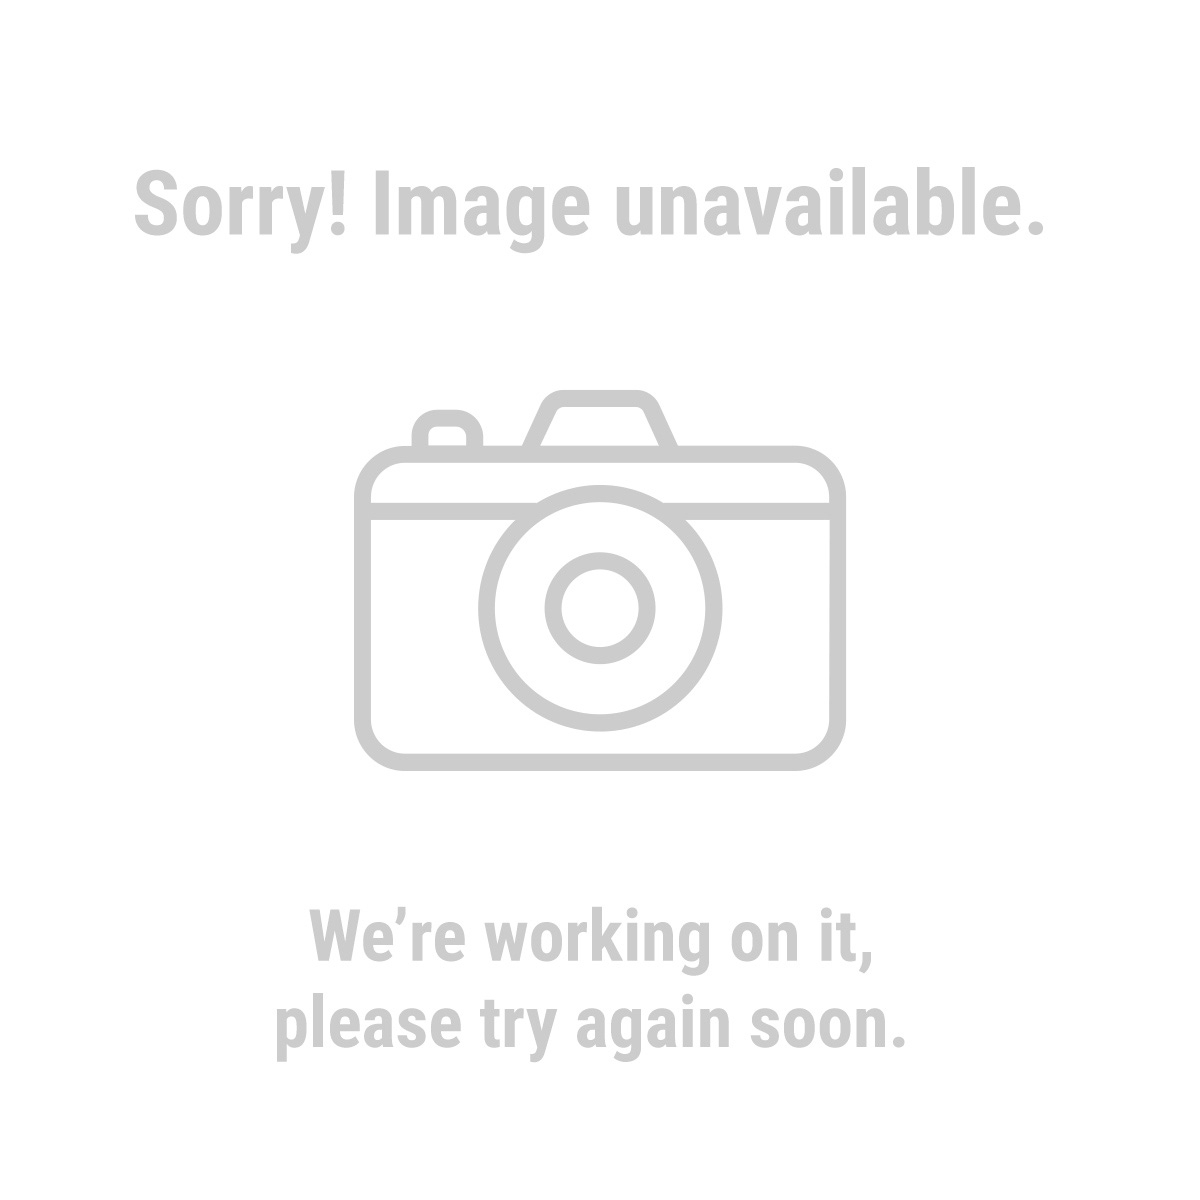 similiar bunker hill security camera system keywords bunker hill security camera wire diagram besides security camera